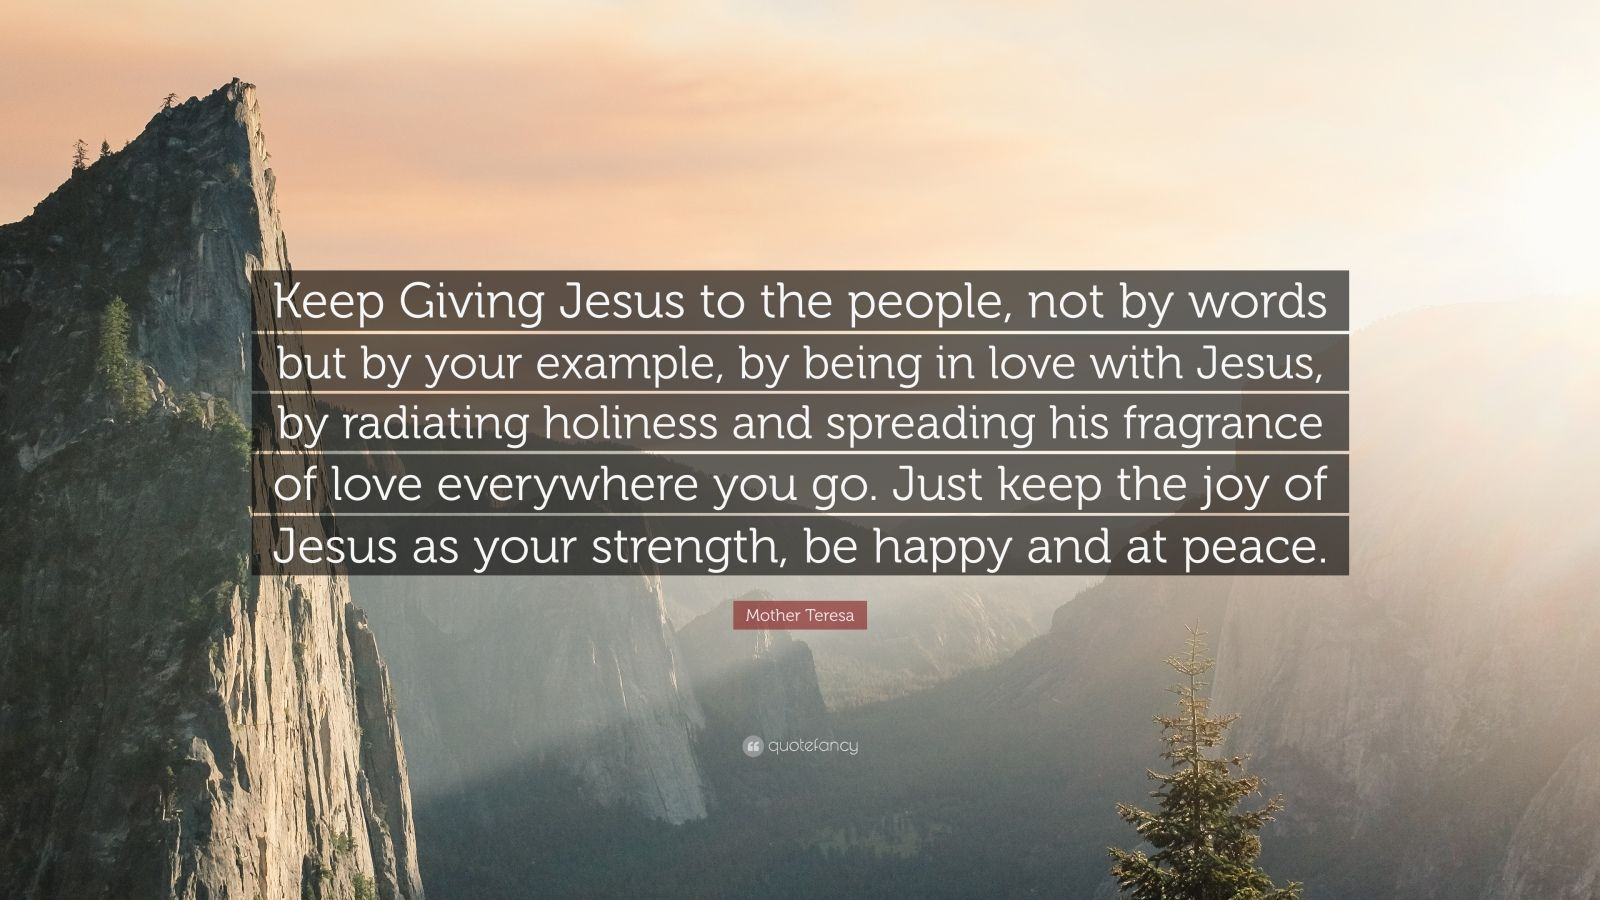 """Mother Teresa Quote: """"Keep Giving Jesus to the people, not by words but by your example, by being in love with Jesus, by radiating holiness and spreading his fragrance of love everywhere you go. Just keep the joy of Jesus as your strength, be happy and at peace."""""""